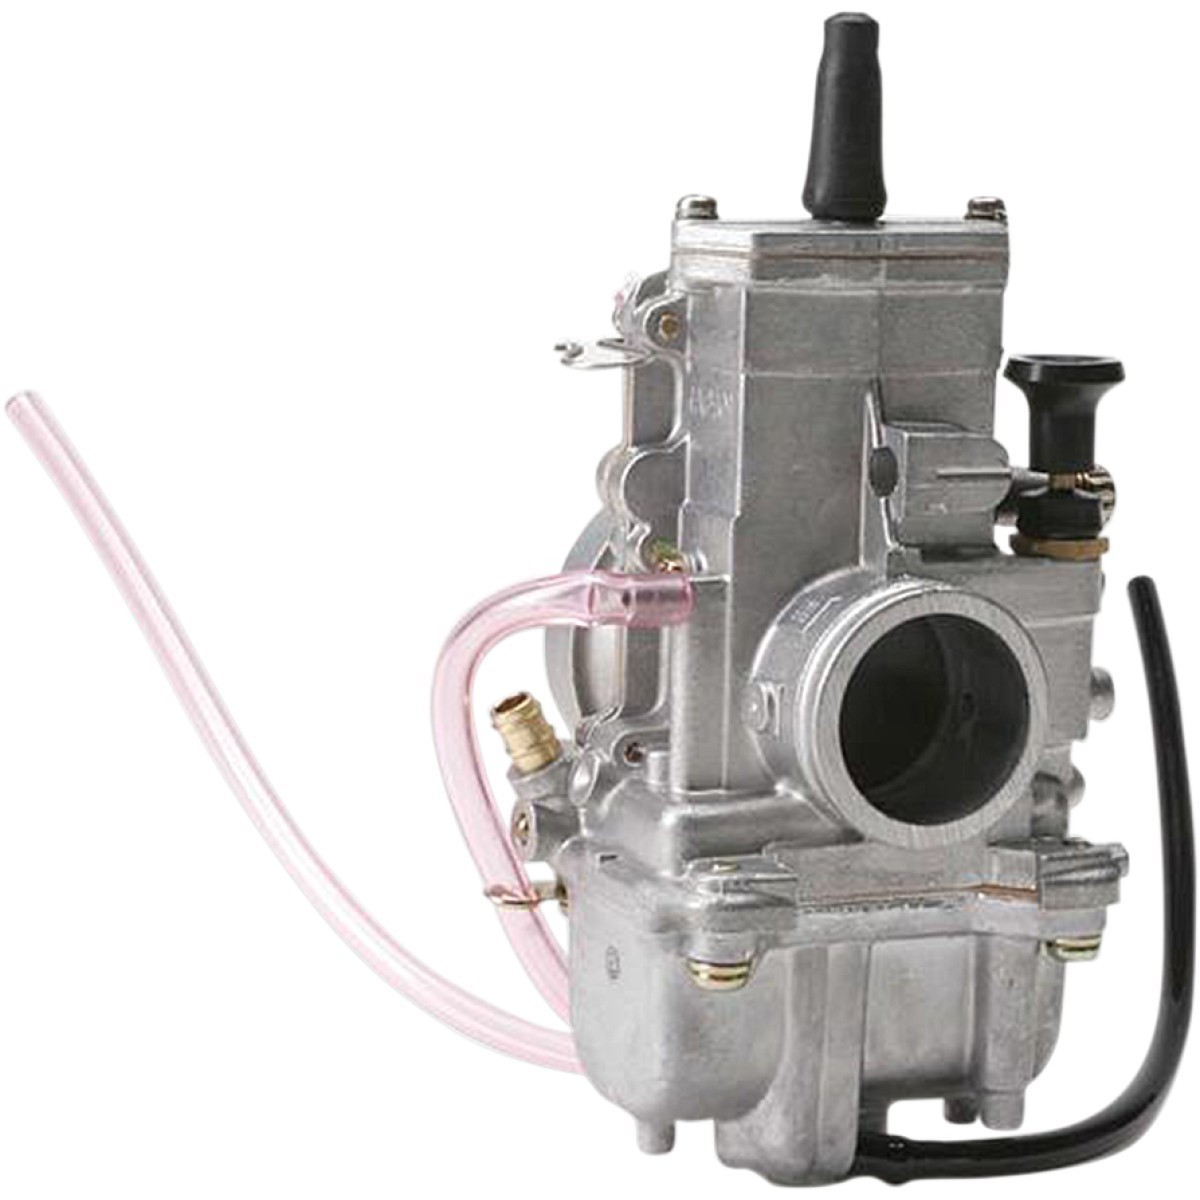 Primary image for Mikuni Geniune TM 34mm 34 mm Flat Slide Smoothbore Carb Carburetor TM34-2